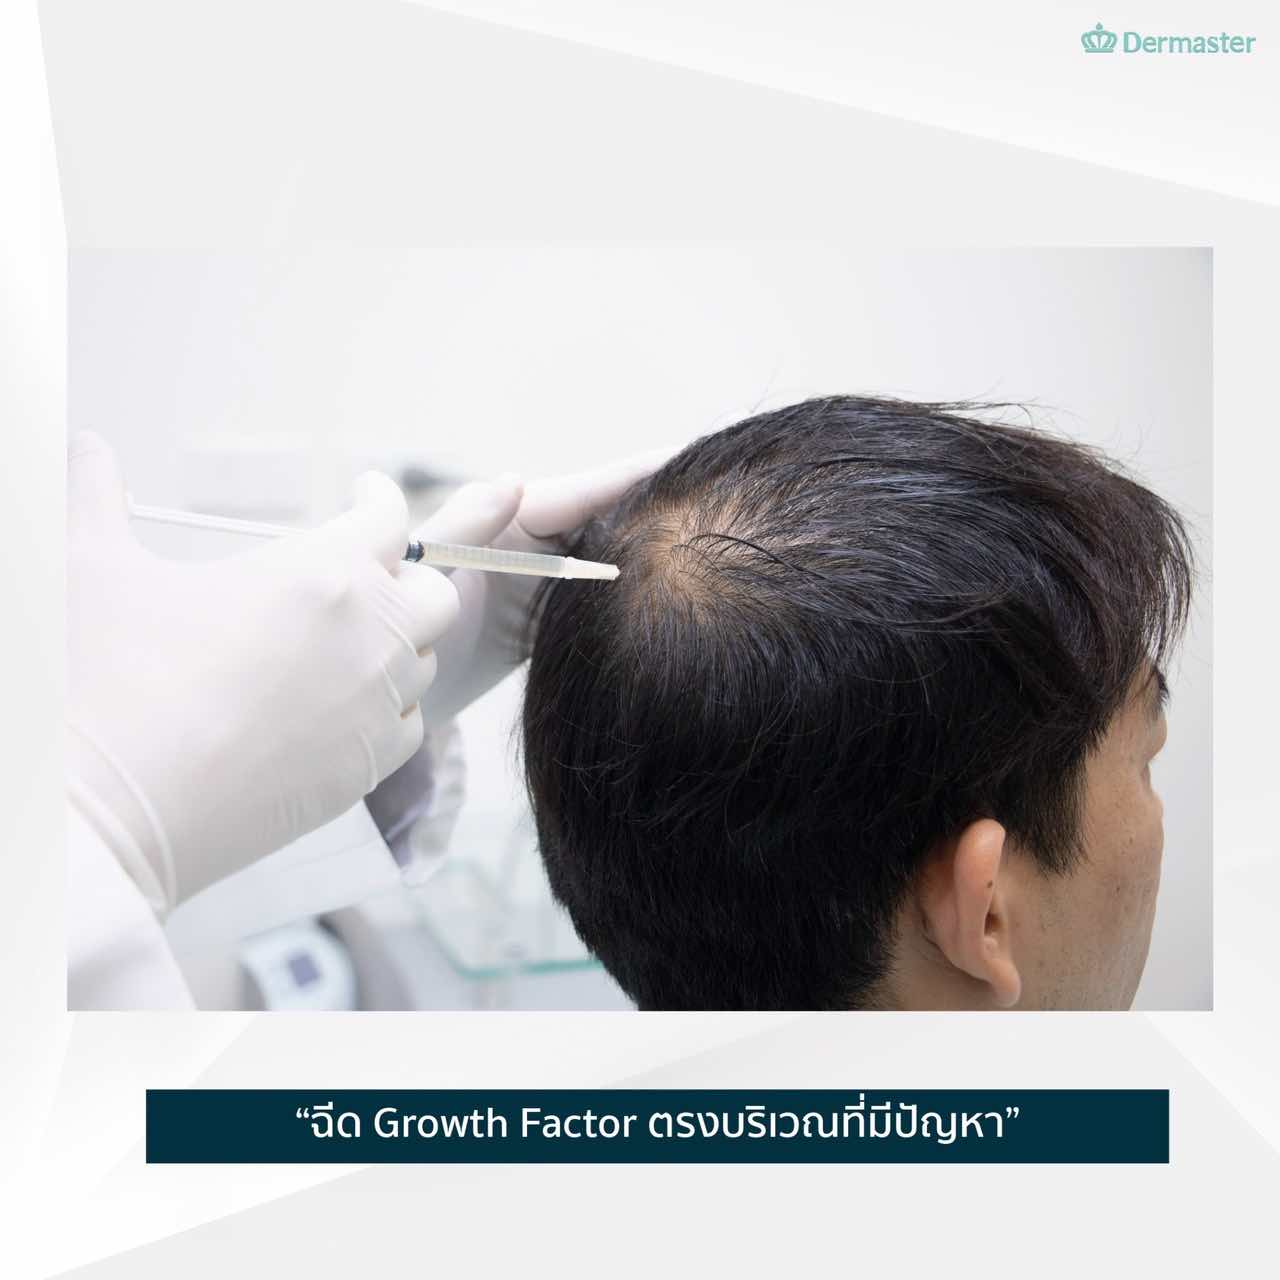 dermaster-hair-growth-service05